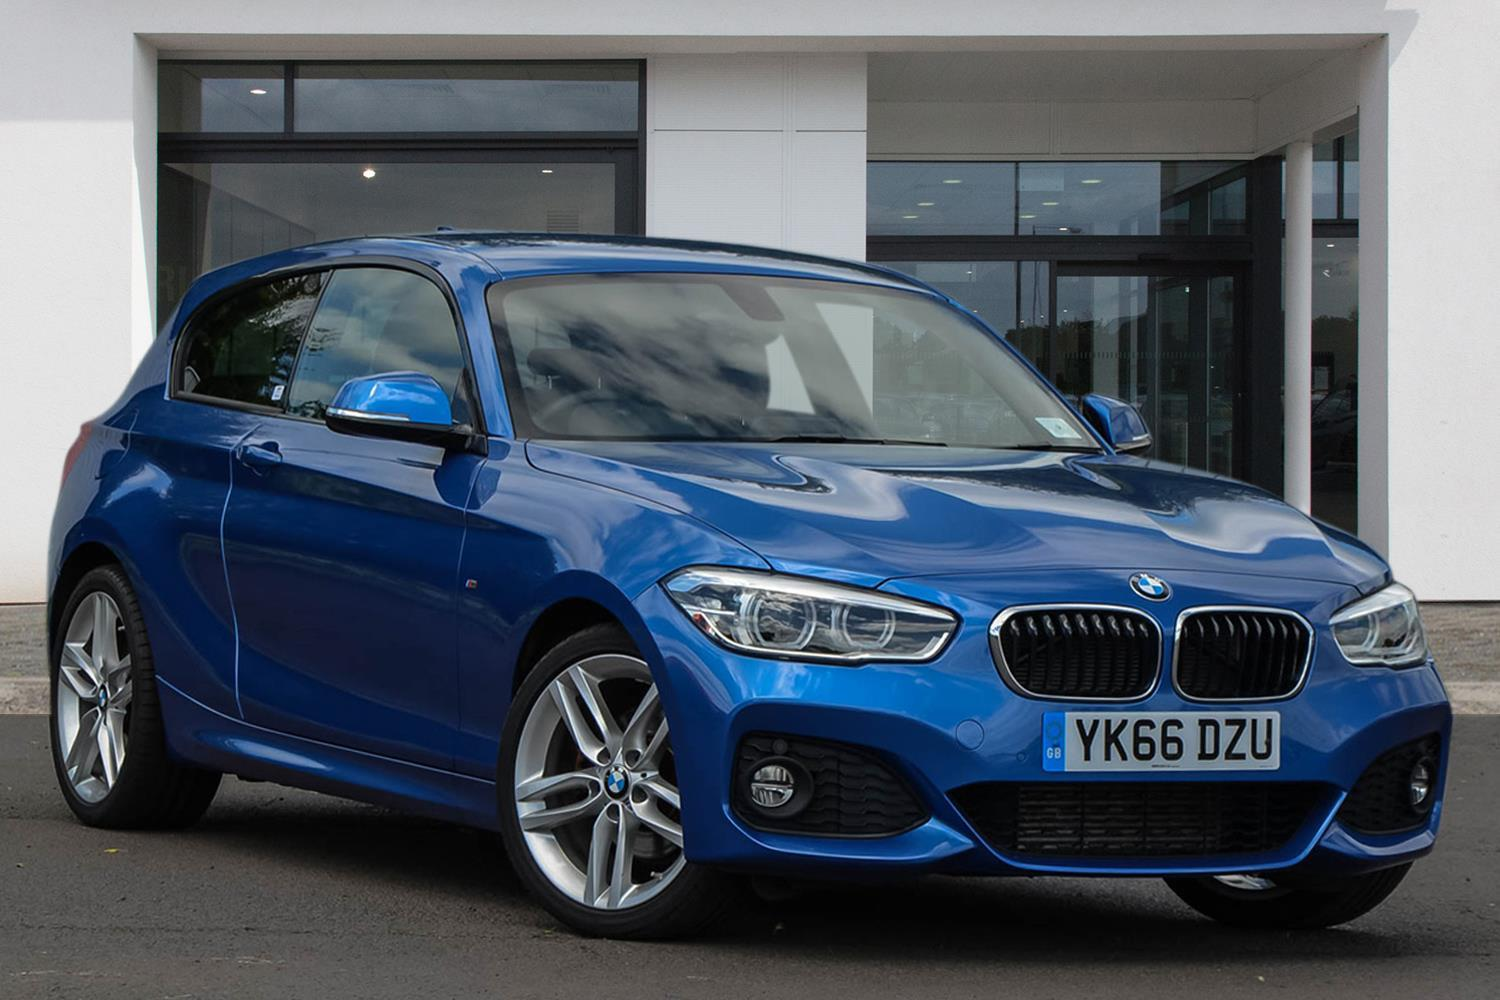 BMW 1 Series 3-door Sports Hatch YK66DZU - Image 3